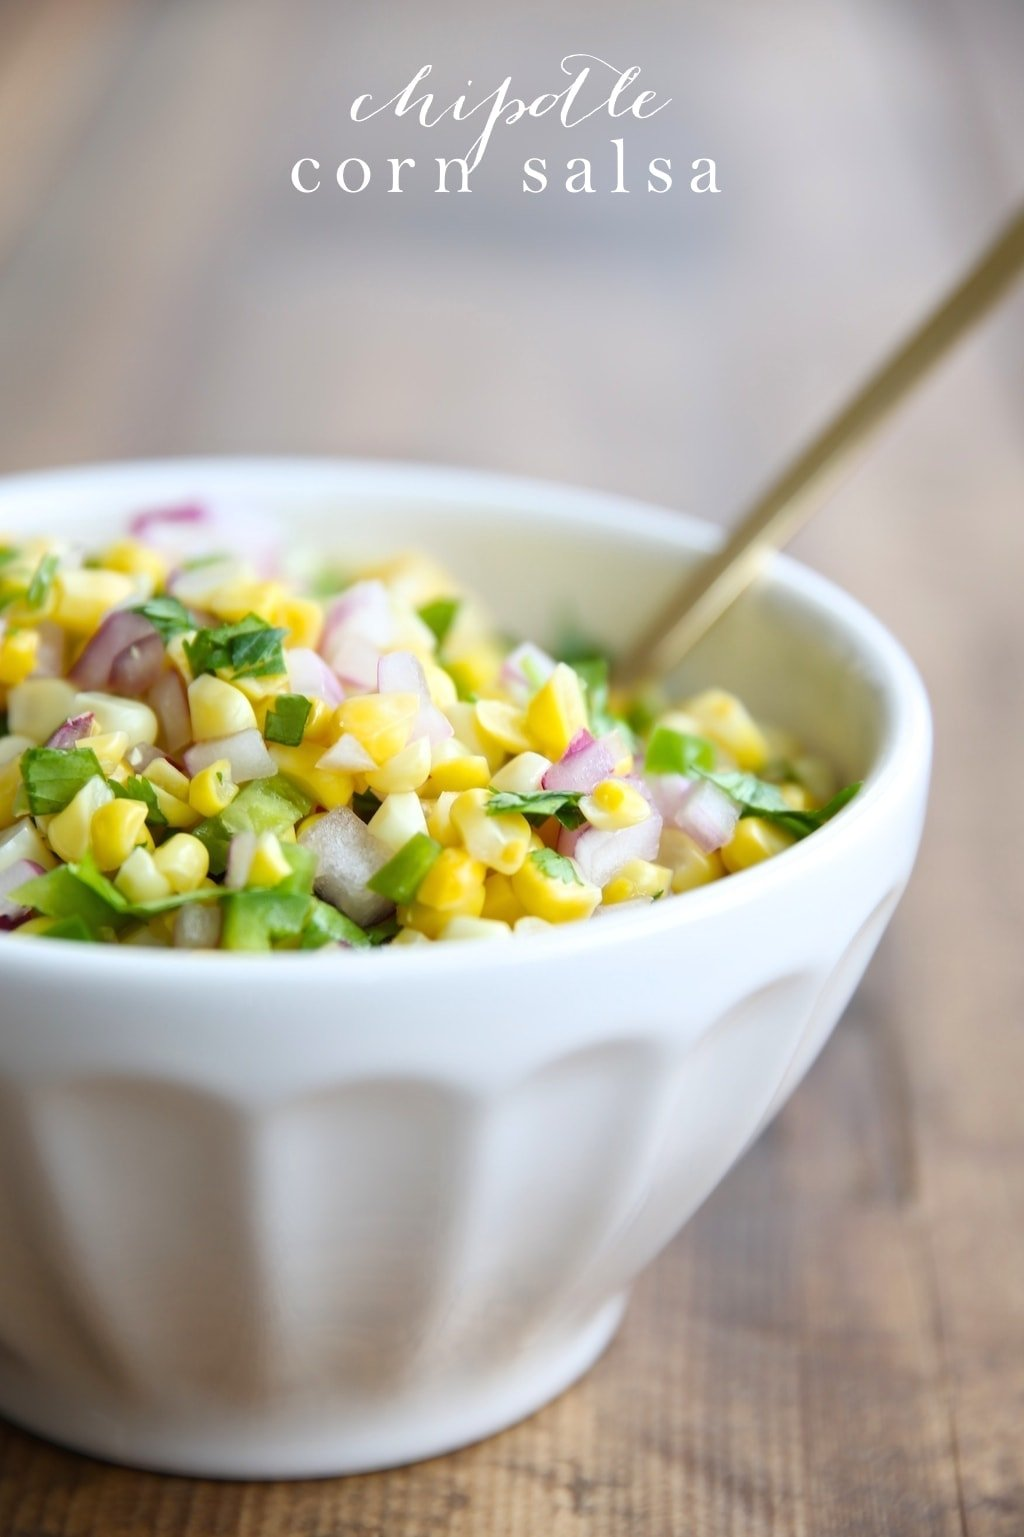 I love this make ahead corn salsa recipe - it's a great dip & topping to a taco bar!